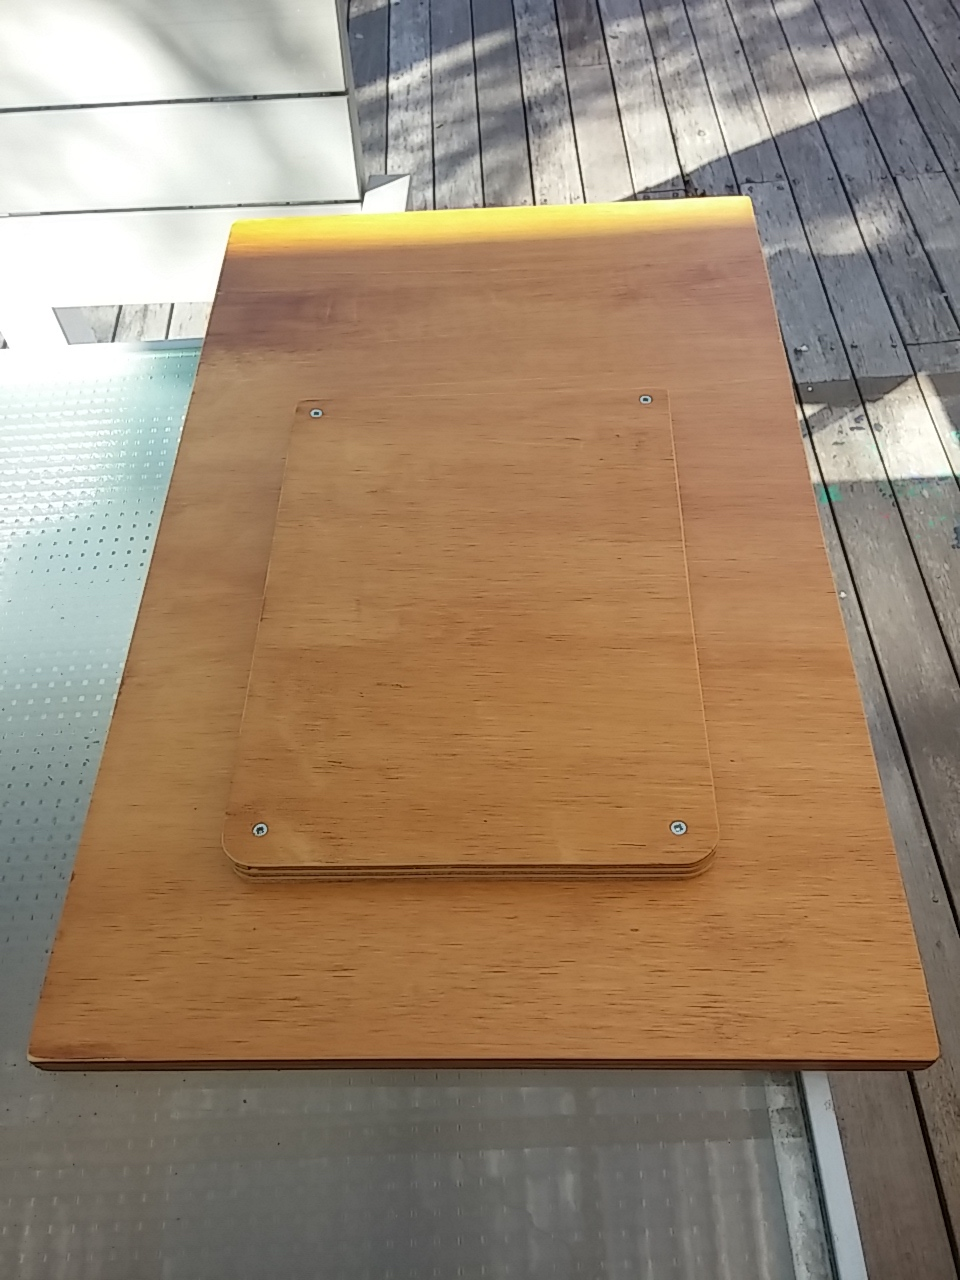 Plywood Mould